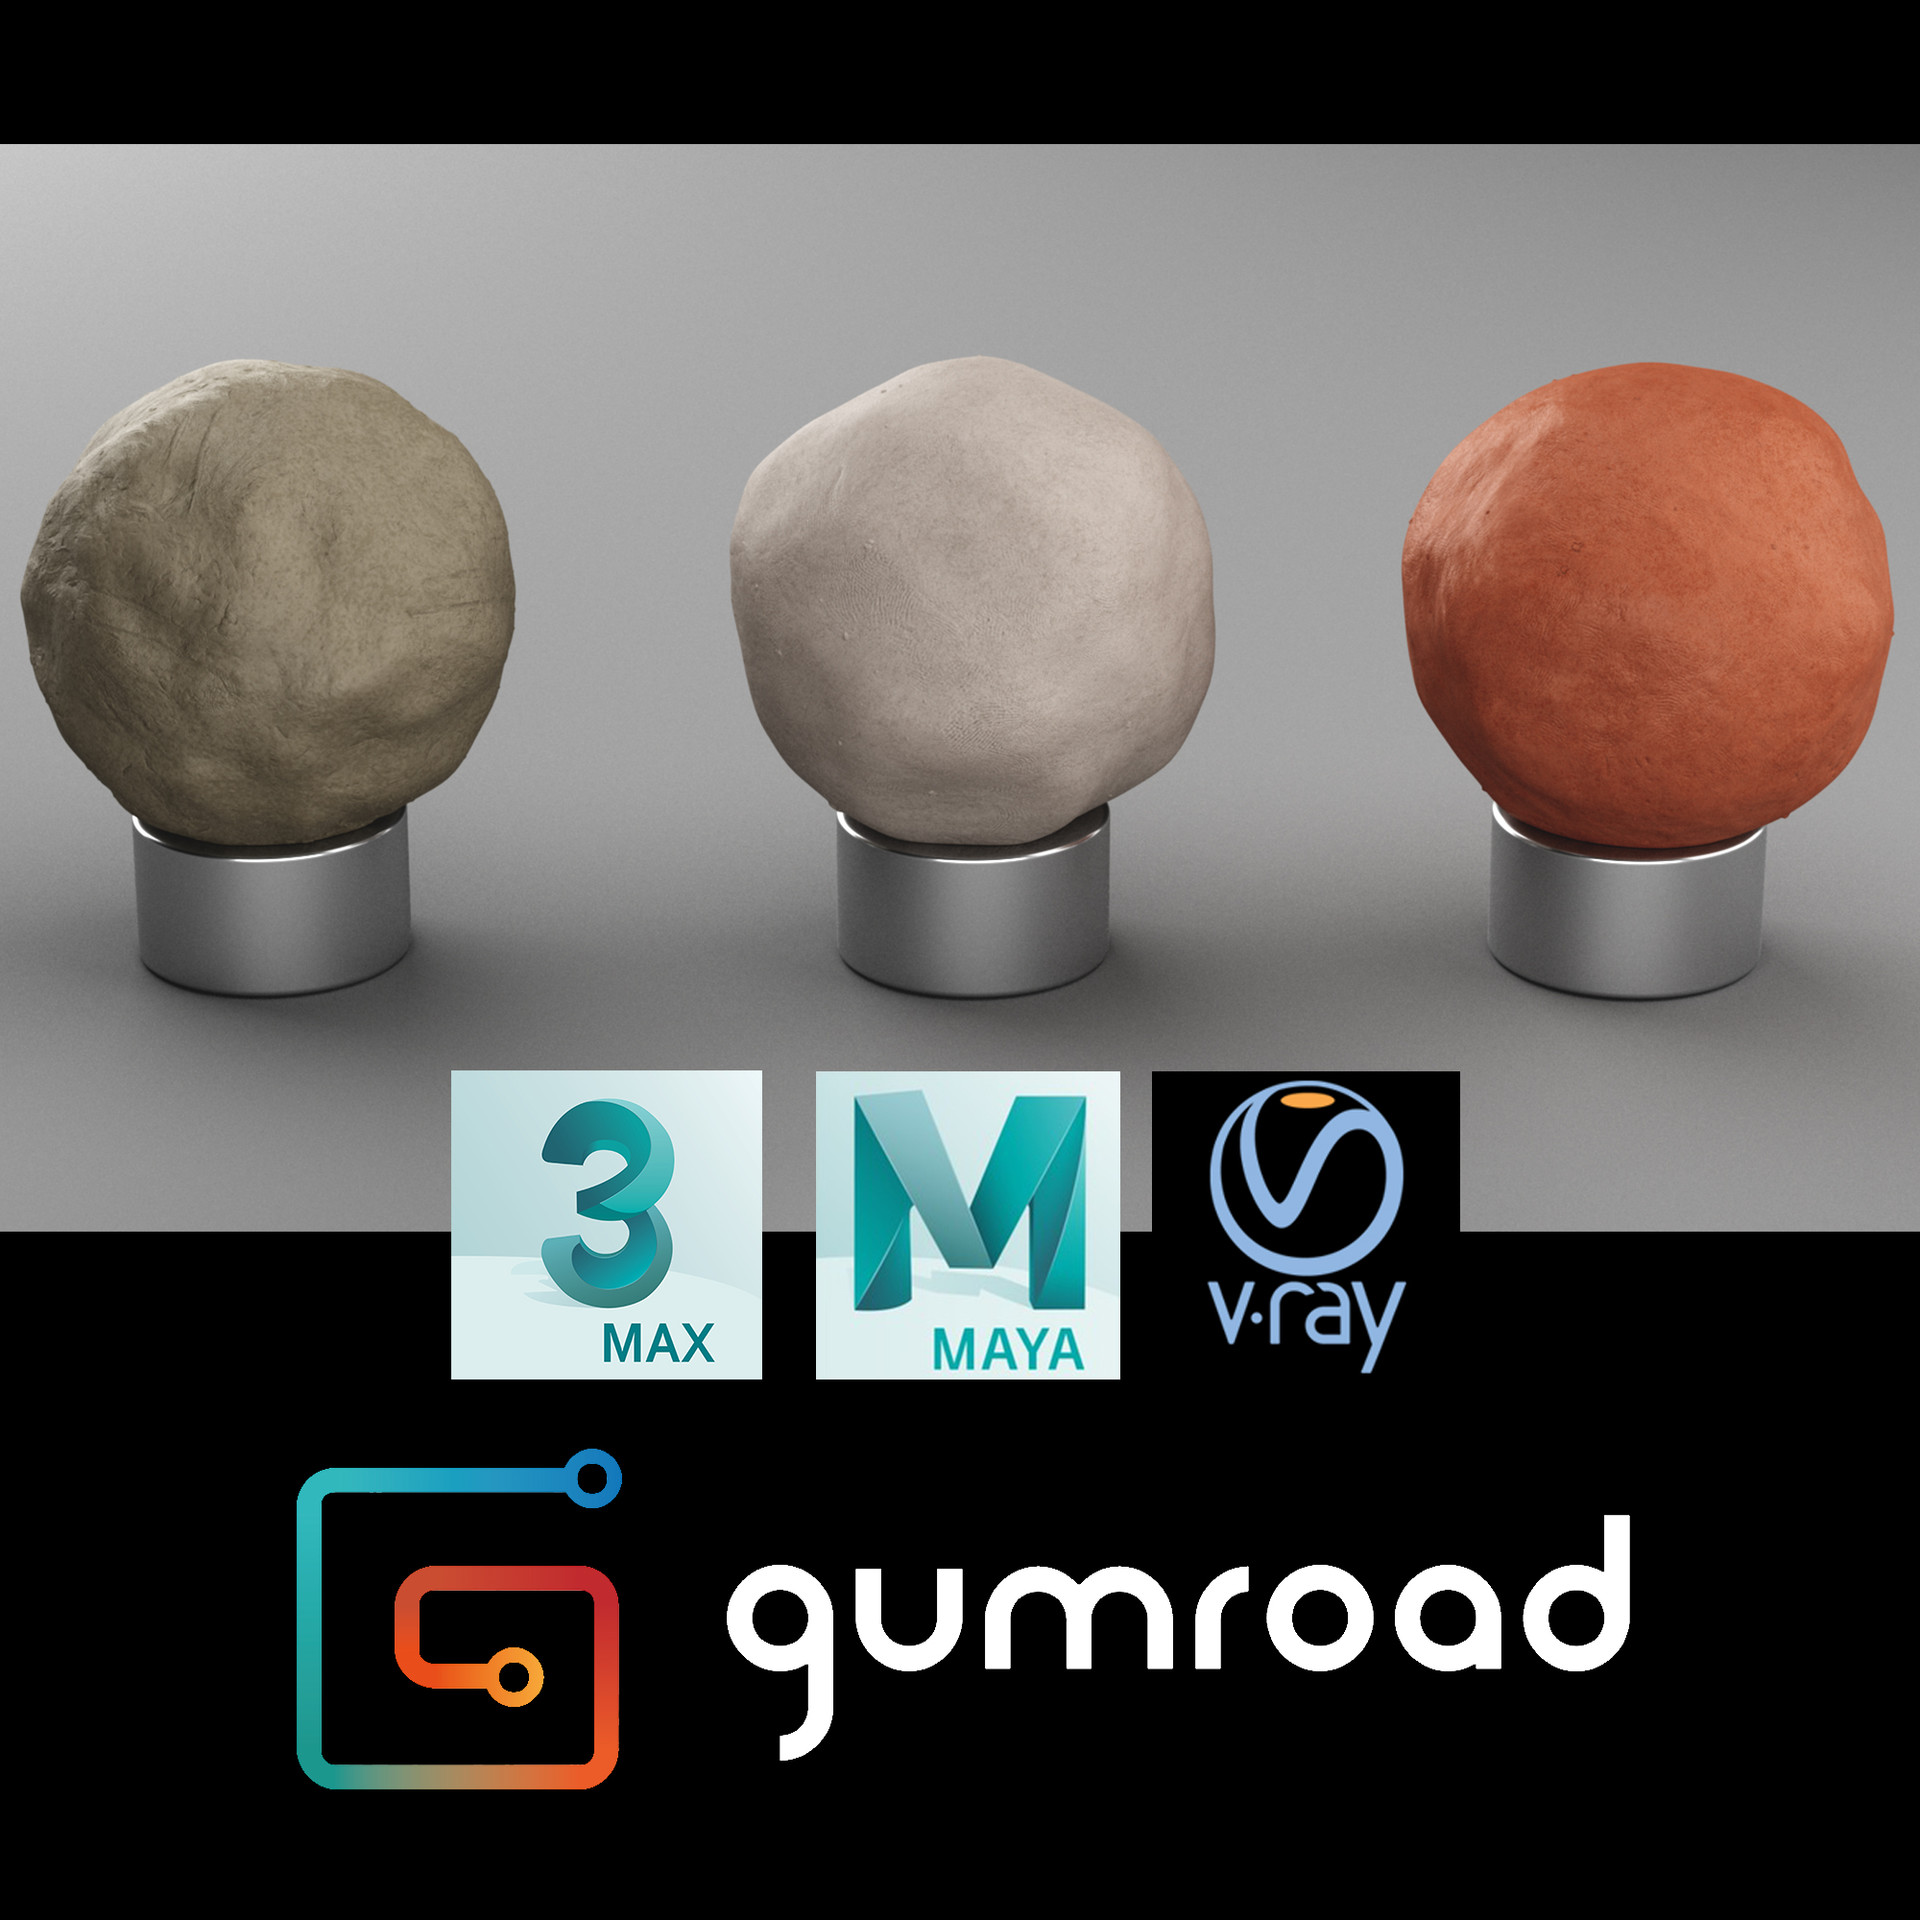 ArtStation - Vray Clay Materials for 3ds max and Maya, Artem